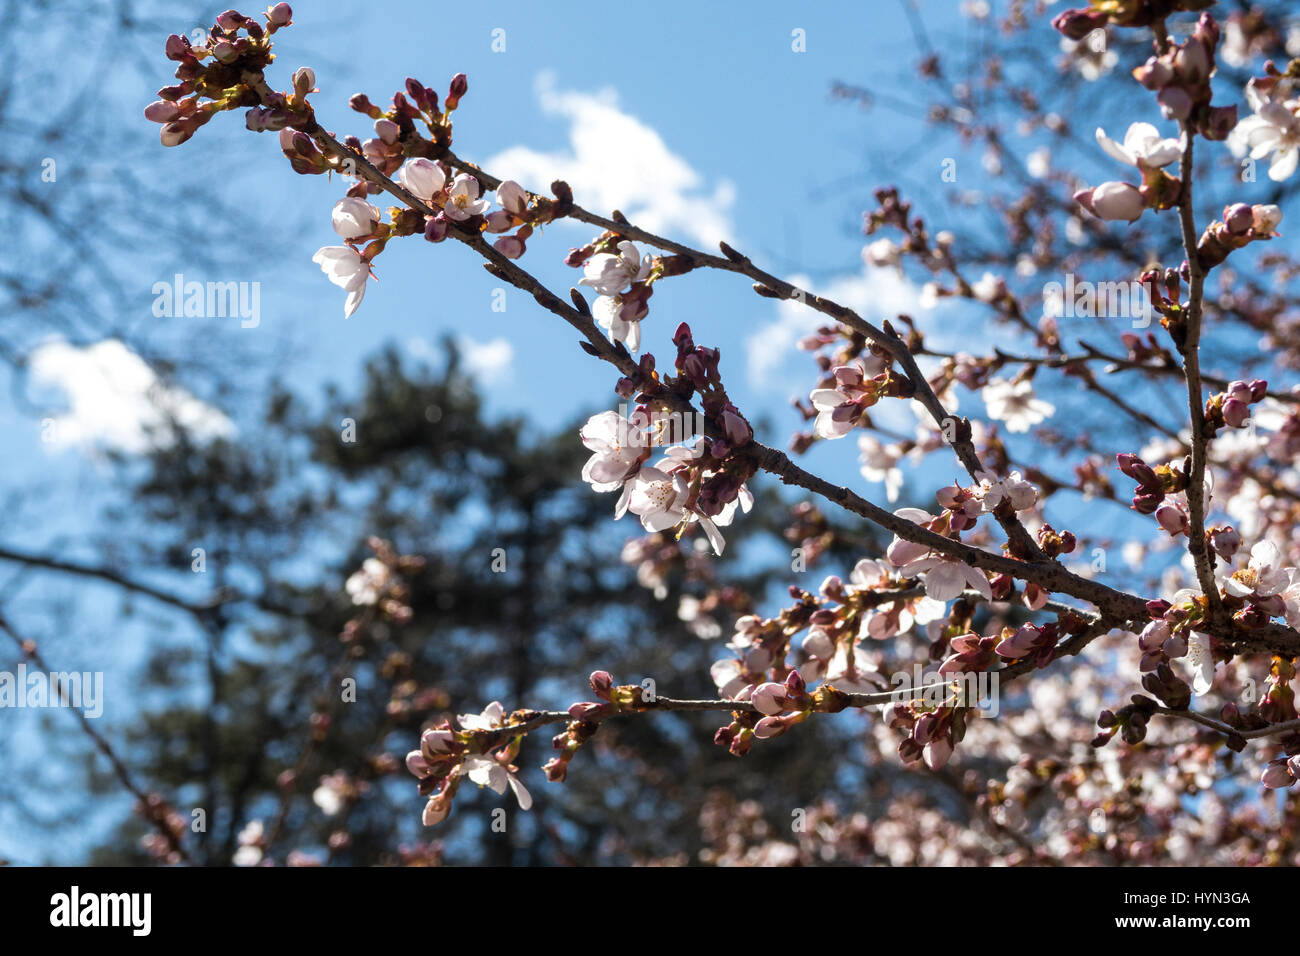 Yoshino Cherry Blossoms in Central Park, NYC - Stock Image